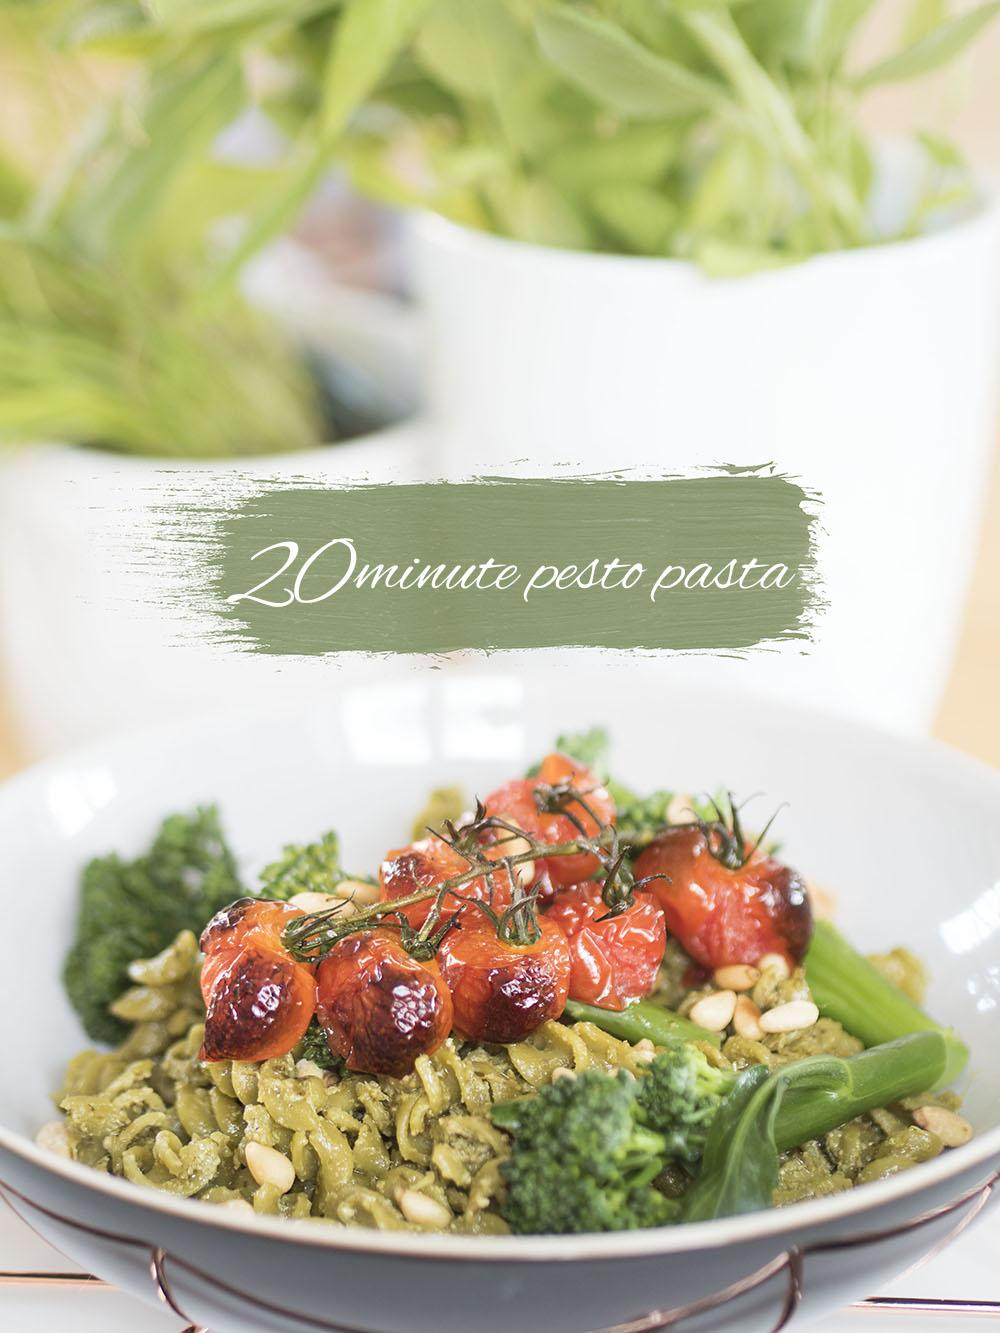 Jamie Oliver 15 Minuten Küche Pasta Pesto Recipes Archives Loved By Laura